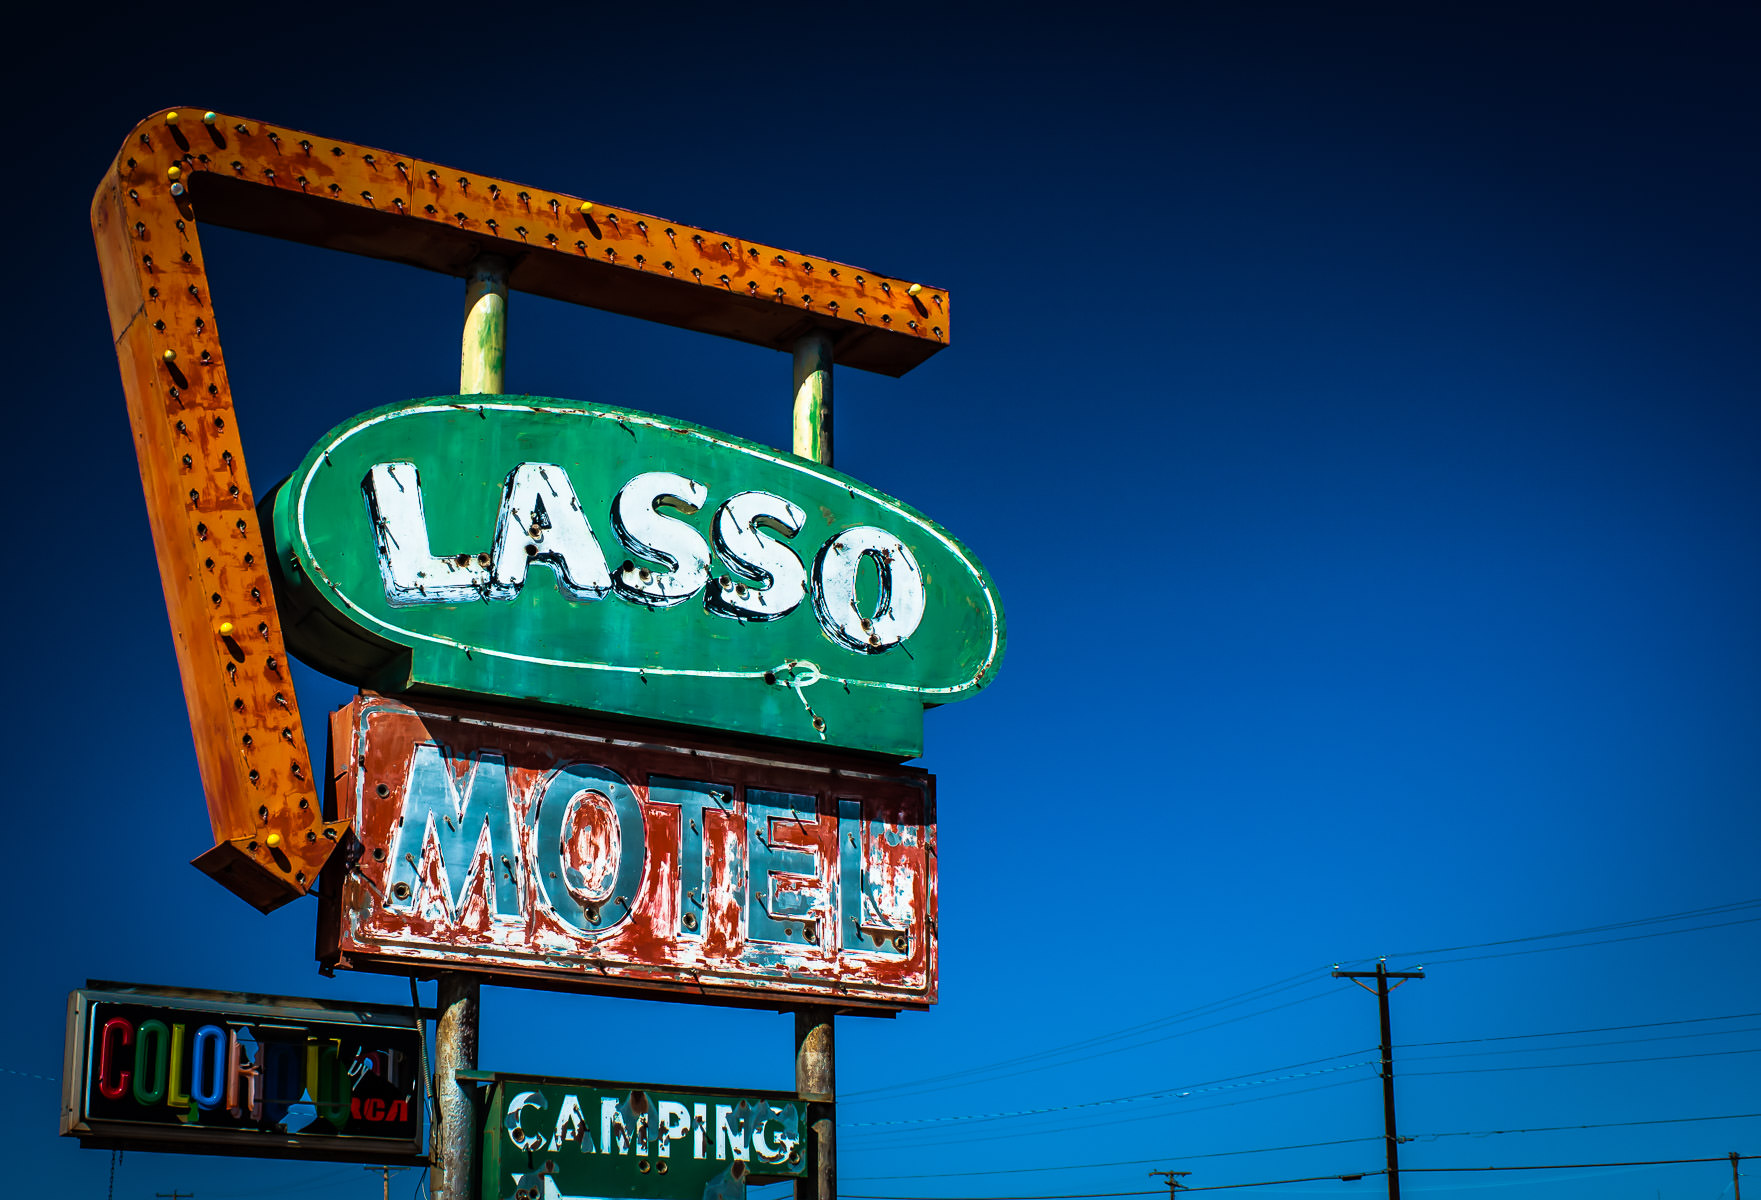 The dilapidated Lasso Motel sign in Tucumcari, New Mexico.